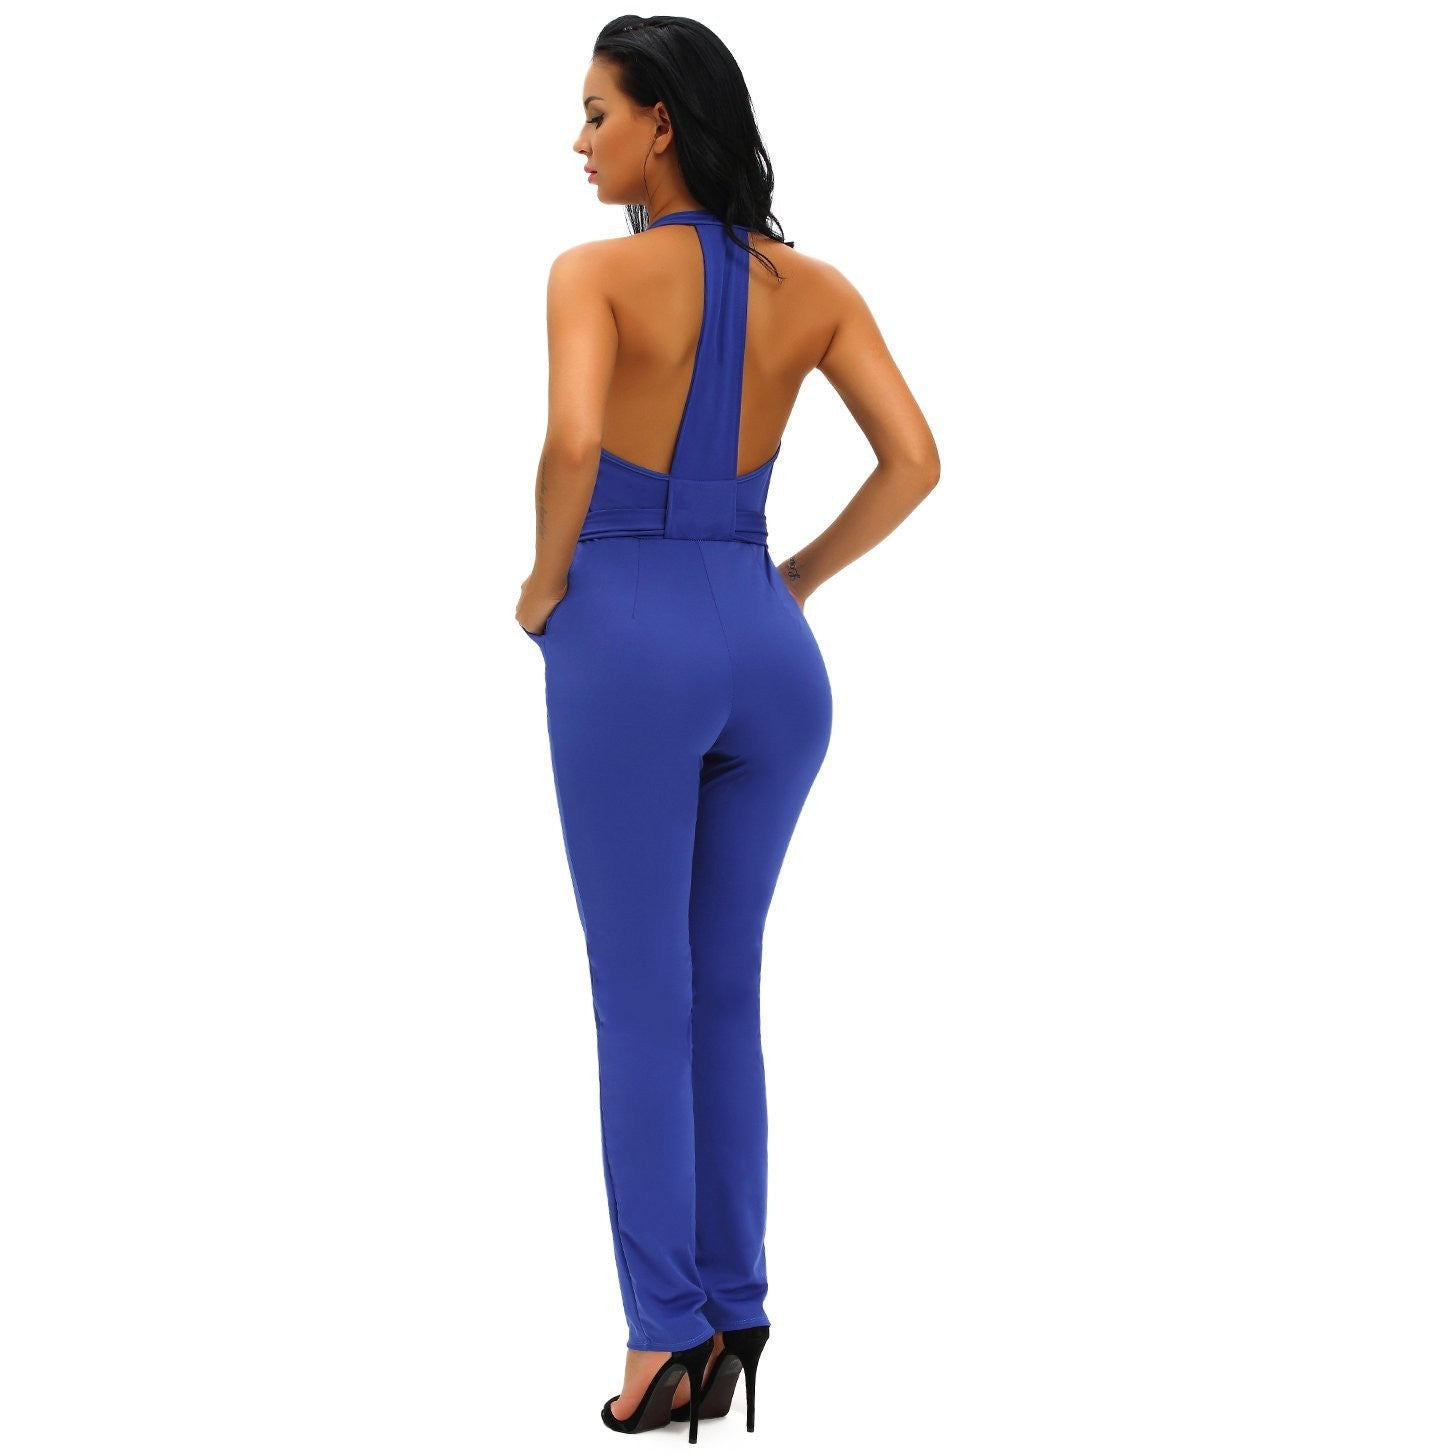 KELLIPS Blue Hollow Out Zipped Front Jumpsuit - KELLIPS